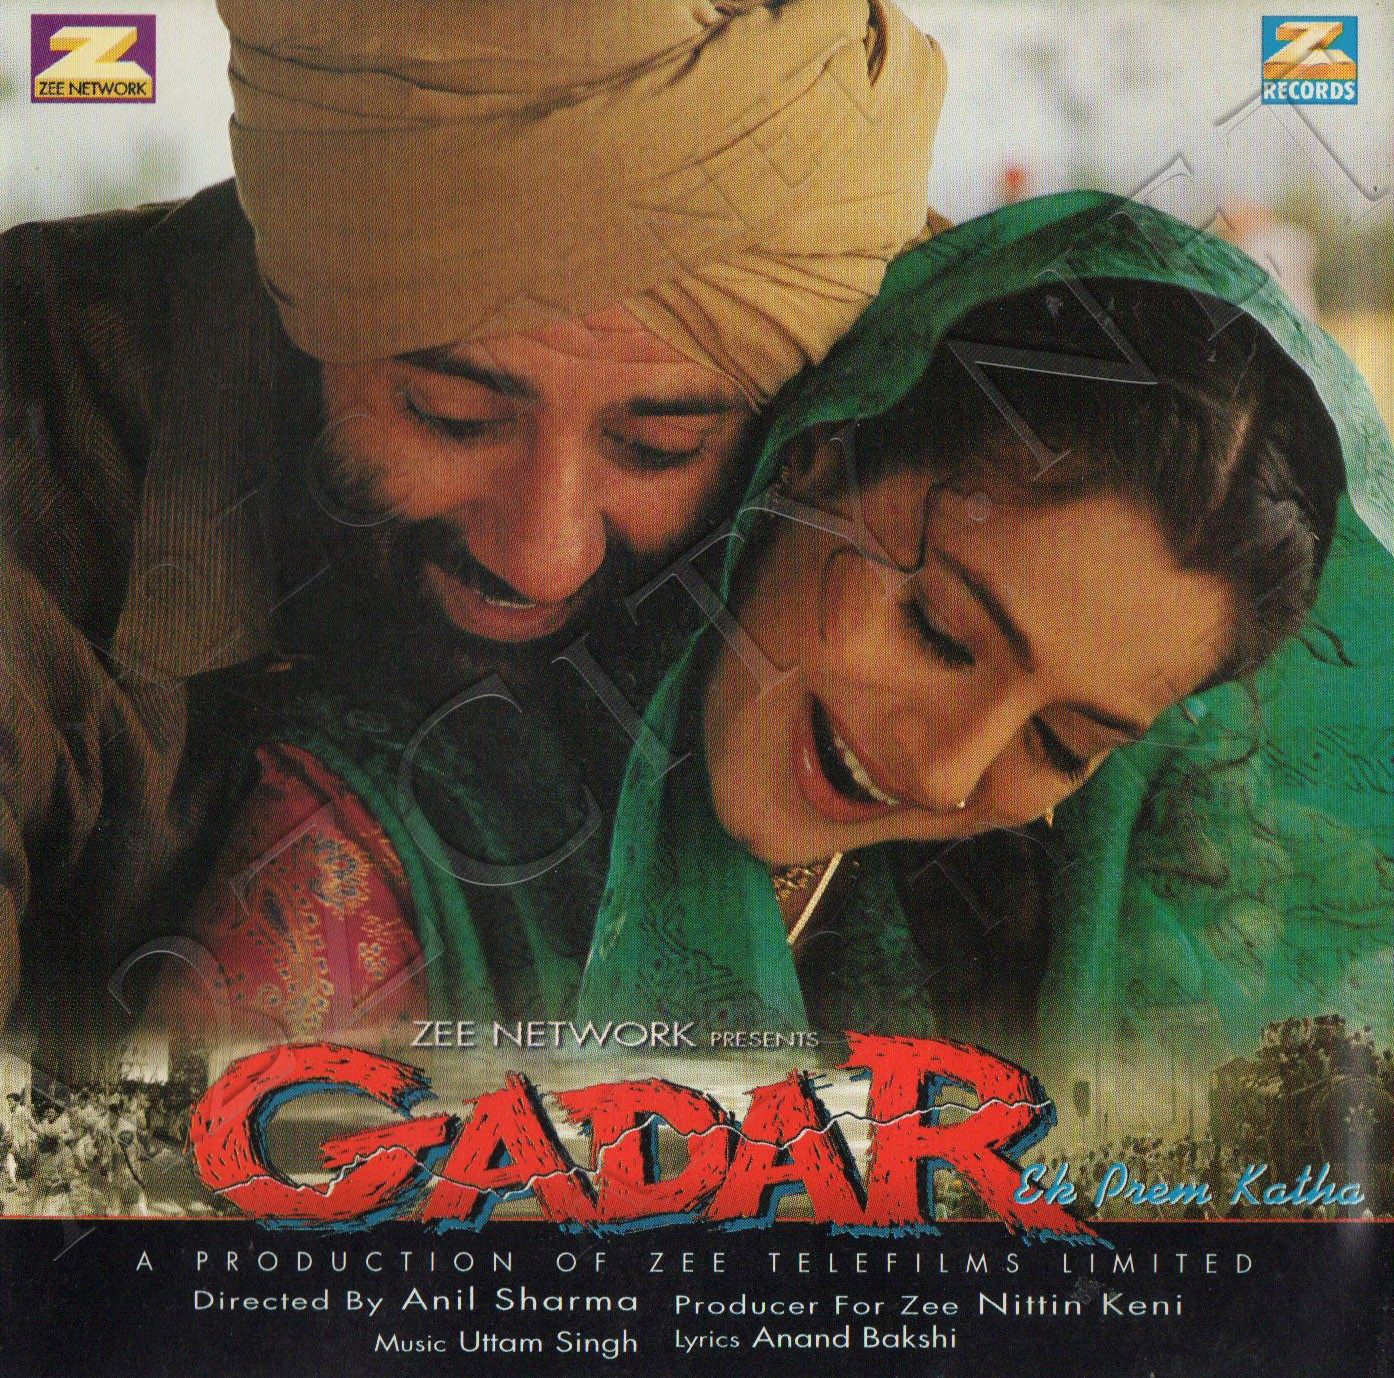 Gadar Ek Prem Katha 2001 Flac Gadar Ek Prem Katha Bollywood Songs Old Movies